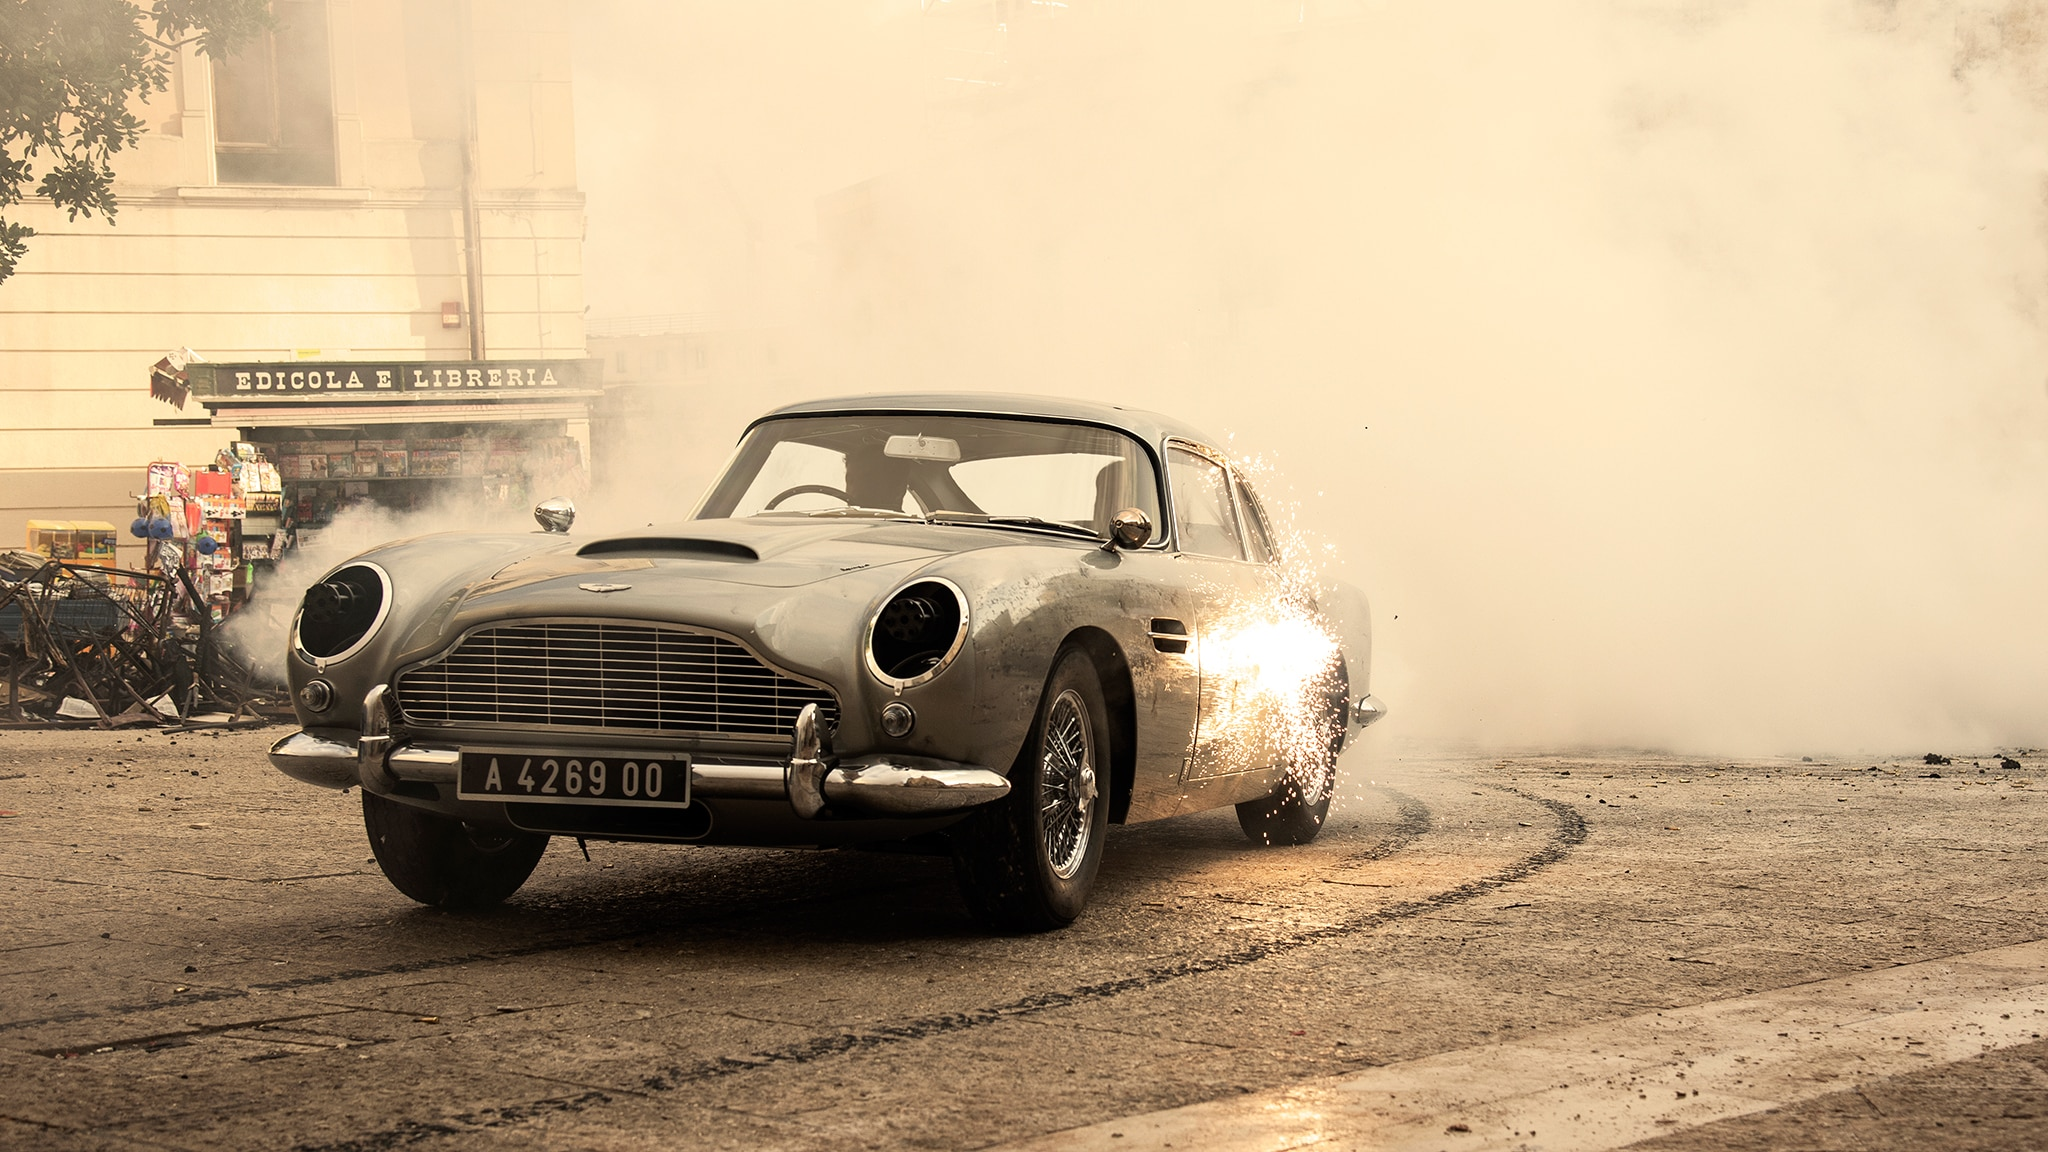 The 3 5 Million James Bond Aston Martin Db5 Gets Wild On The Set Of No Time To Die